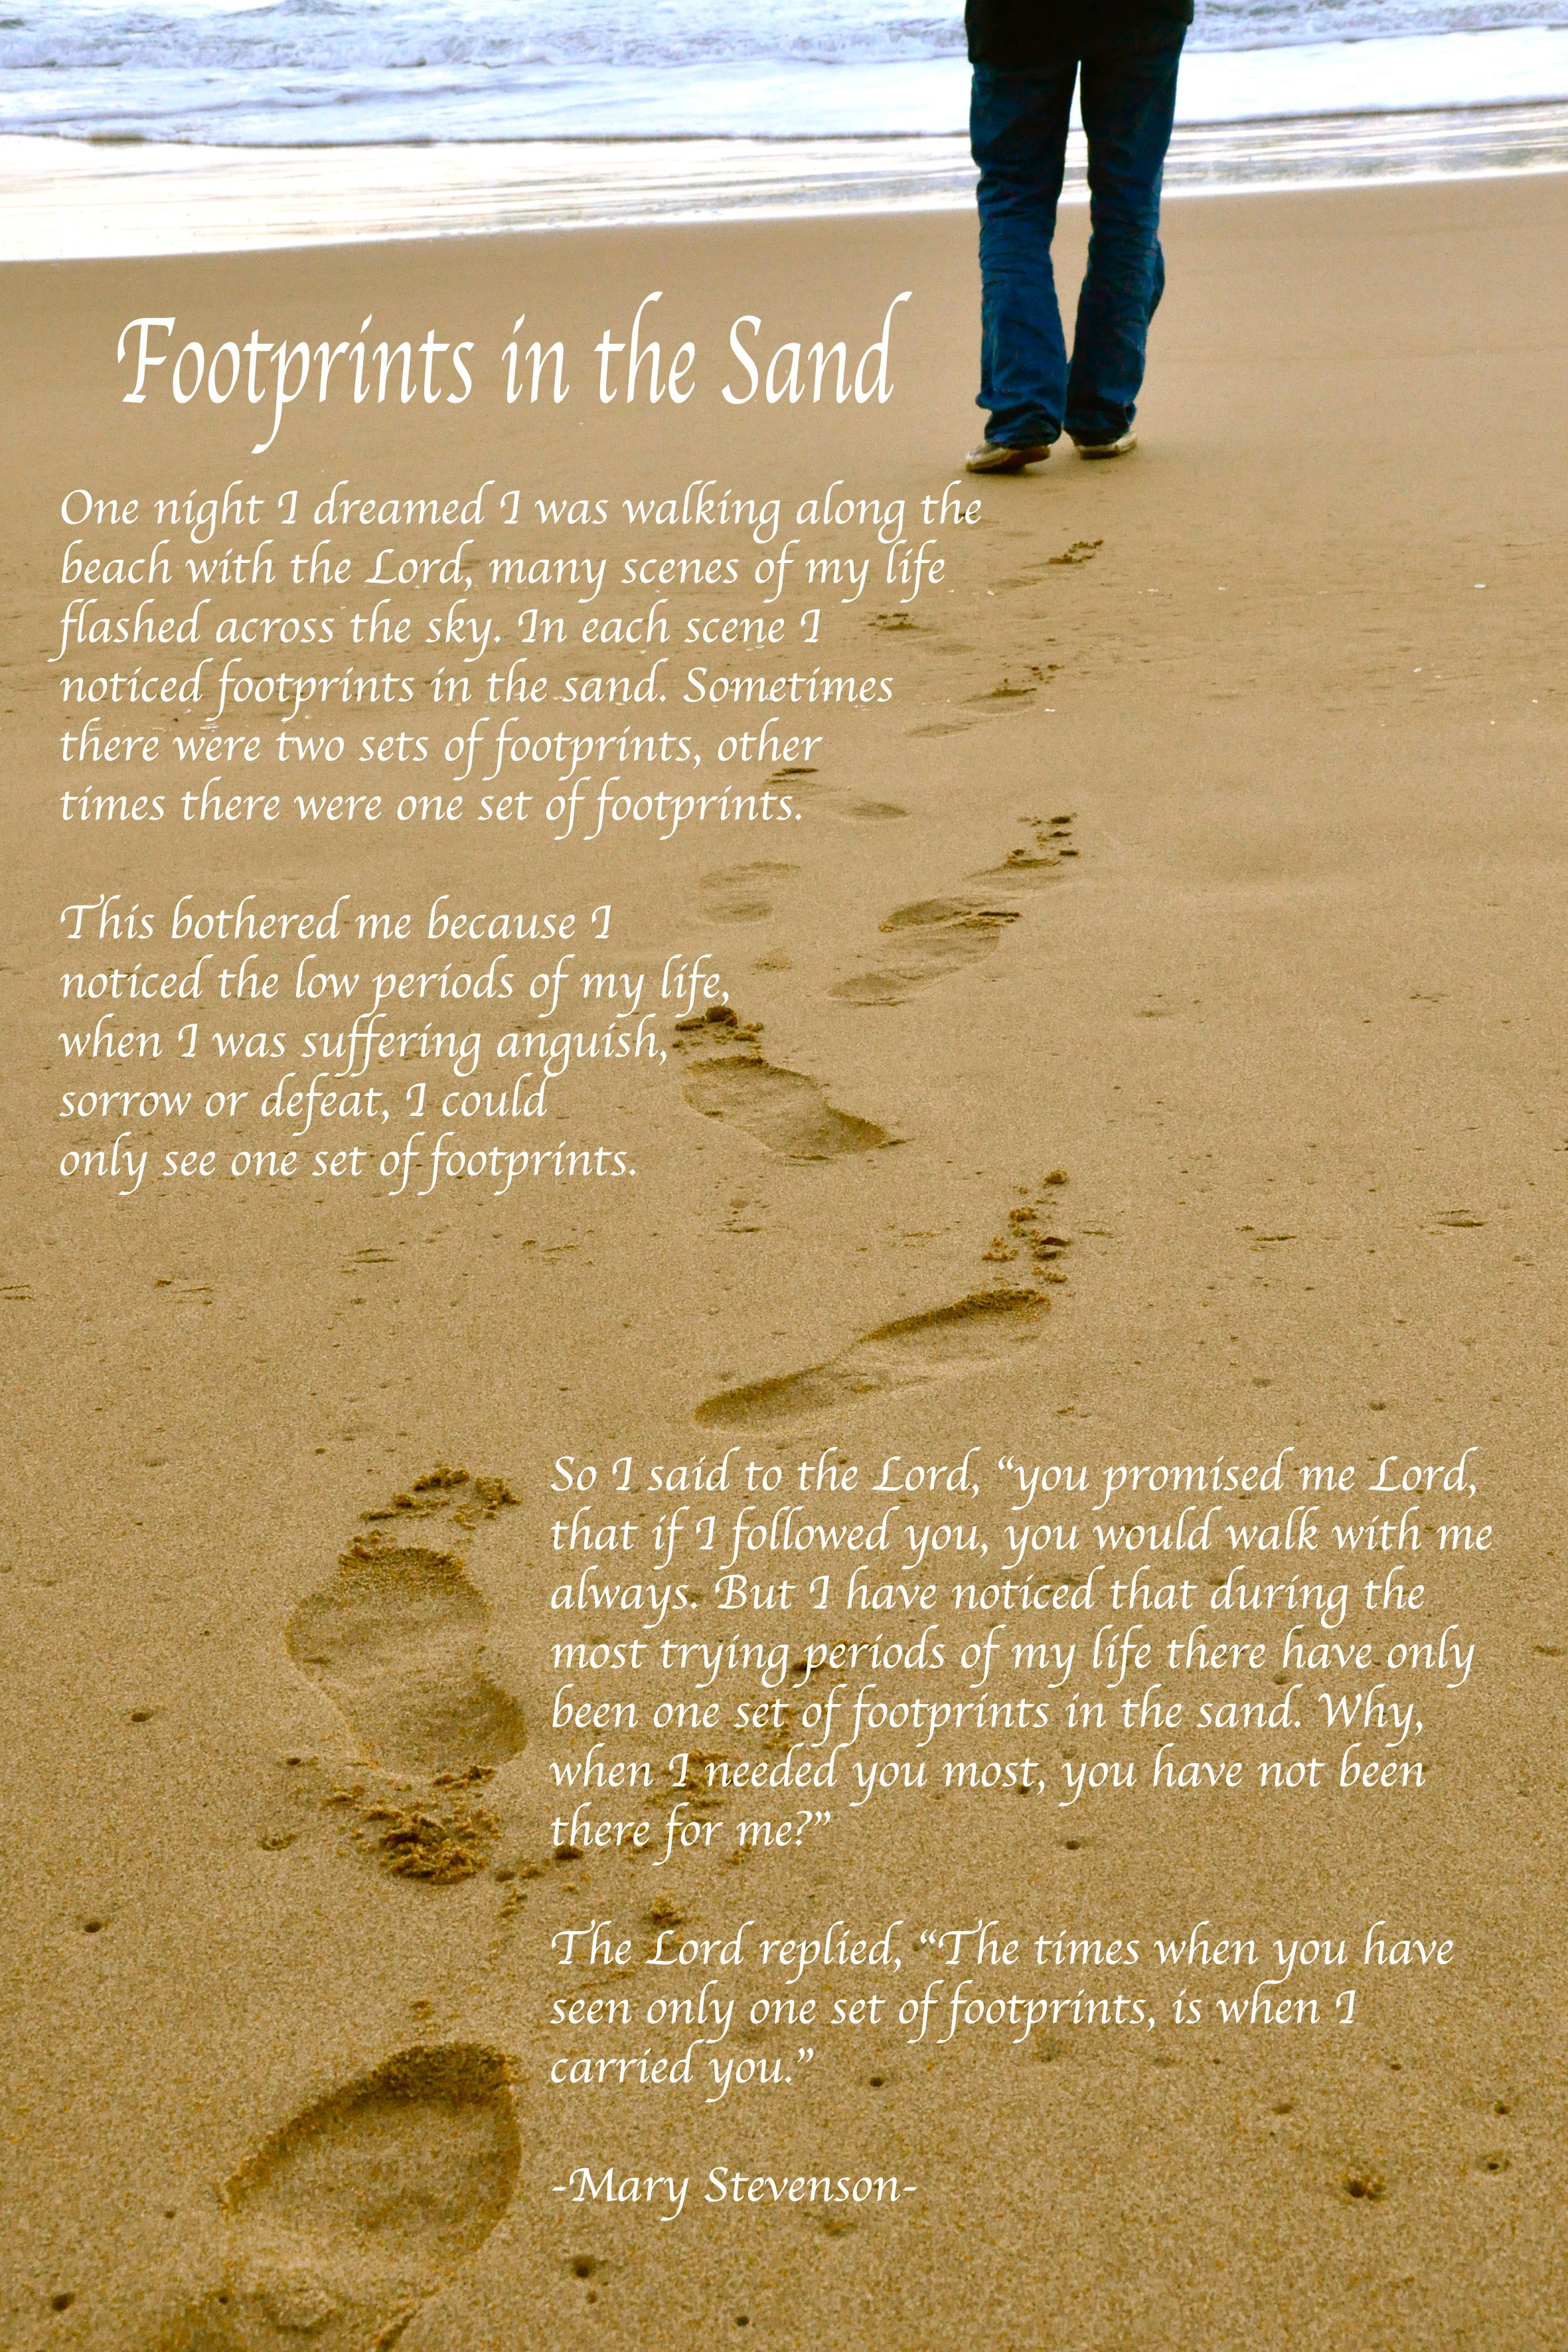 image regarding Footprints in the Sand Printable titled Footprints inside the sand bible verse